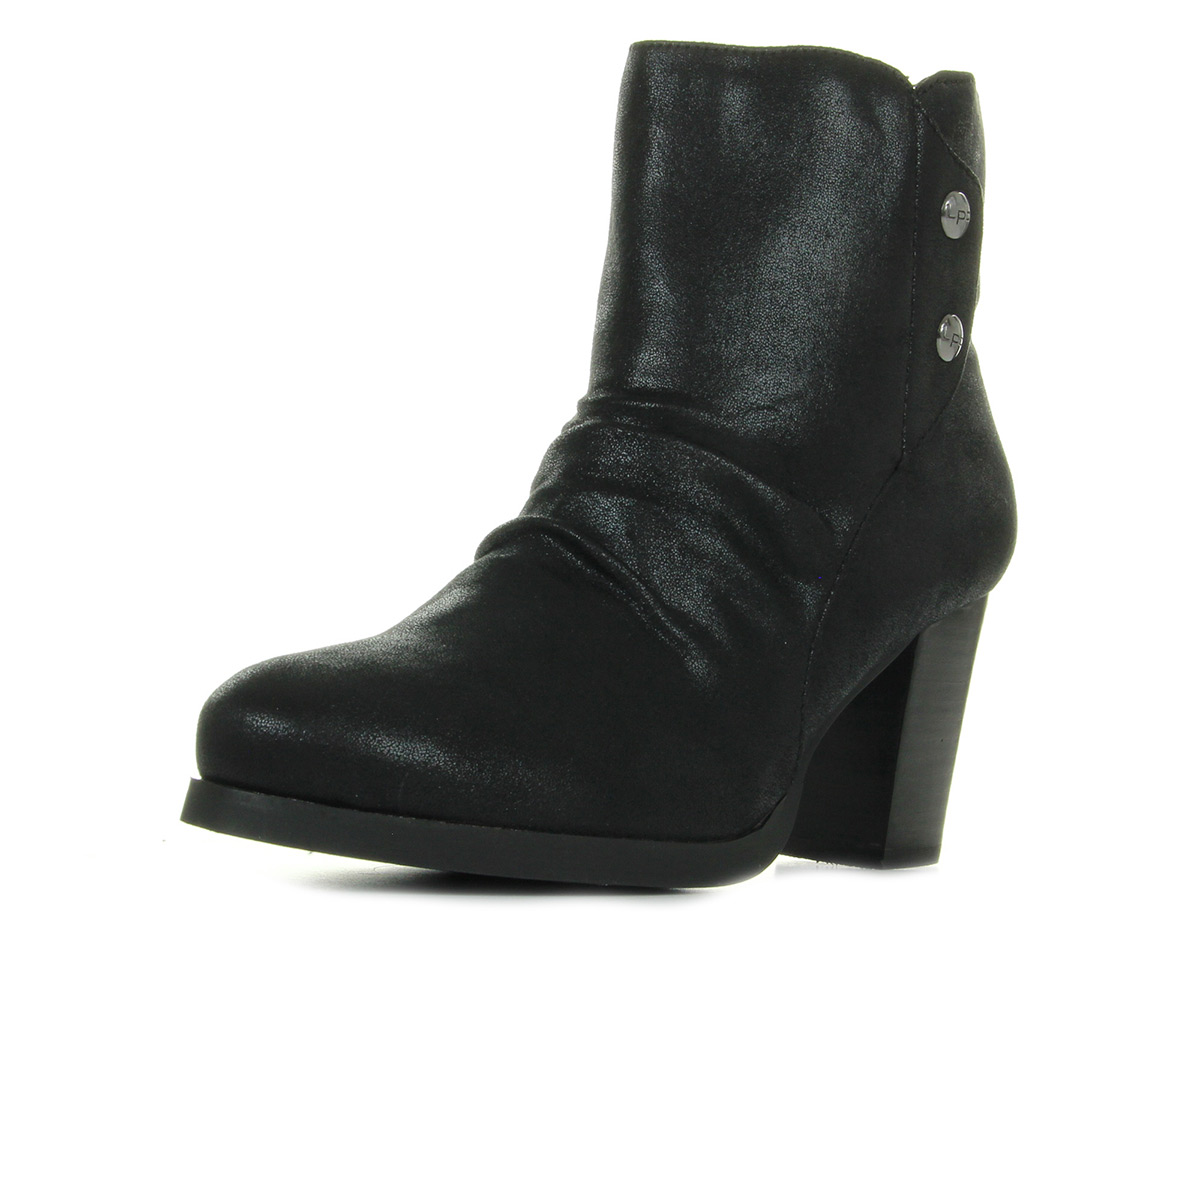 Boots Les Petites Bombes 4 Claire Noir Y3ZNxVHWeJ